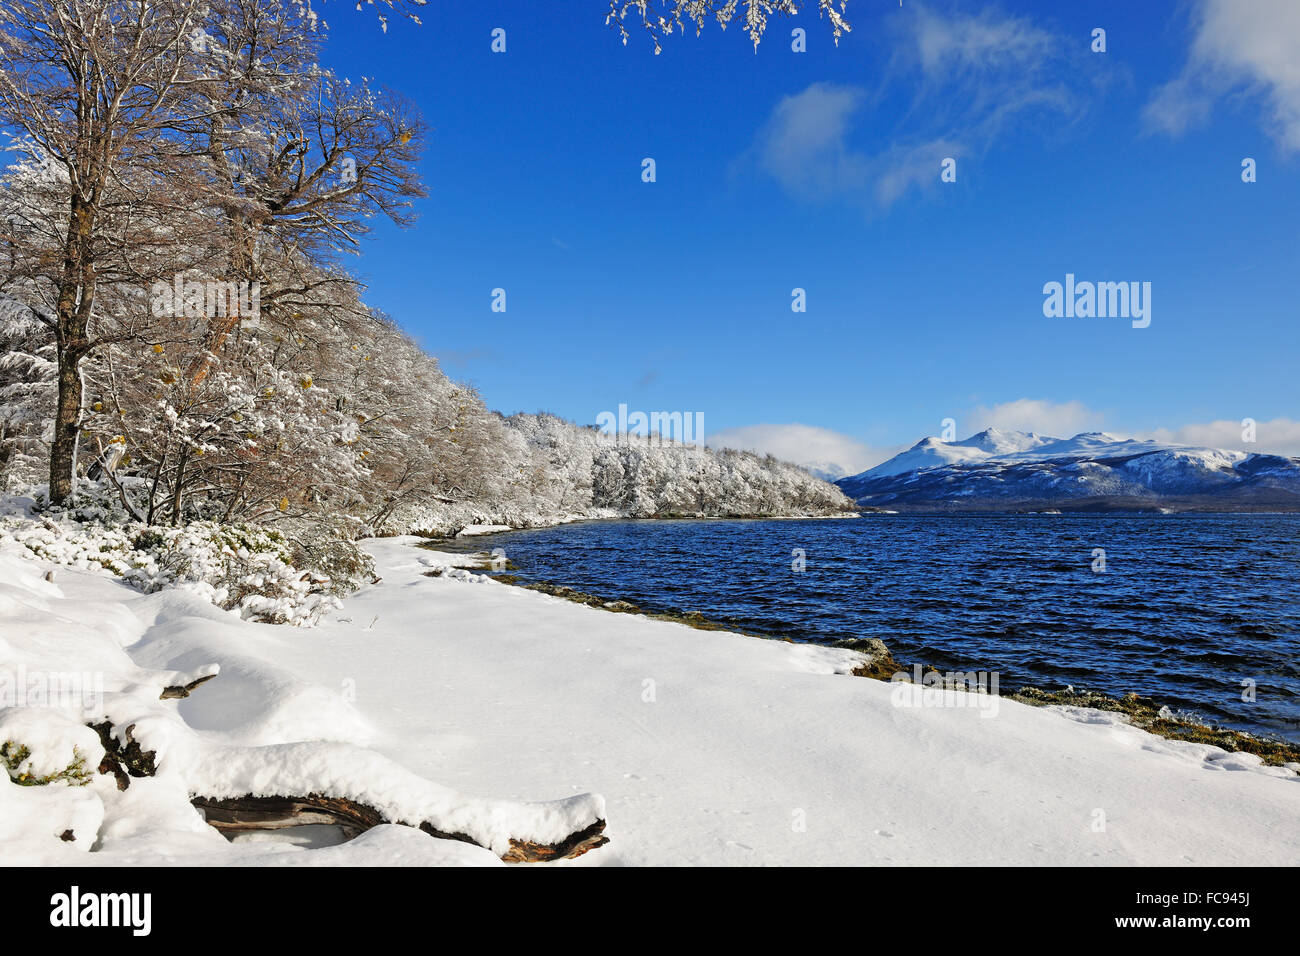 Patagonic landscape, Silver Lake, Patagonia, Argentina, South America - Stock Image